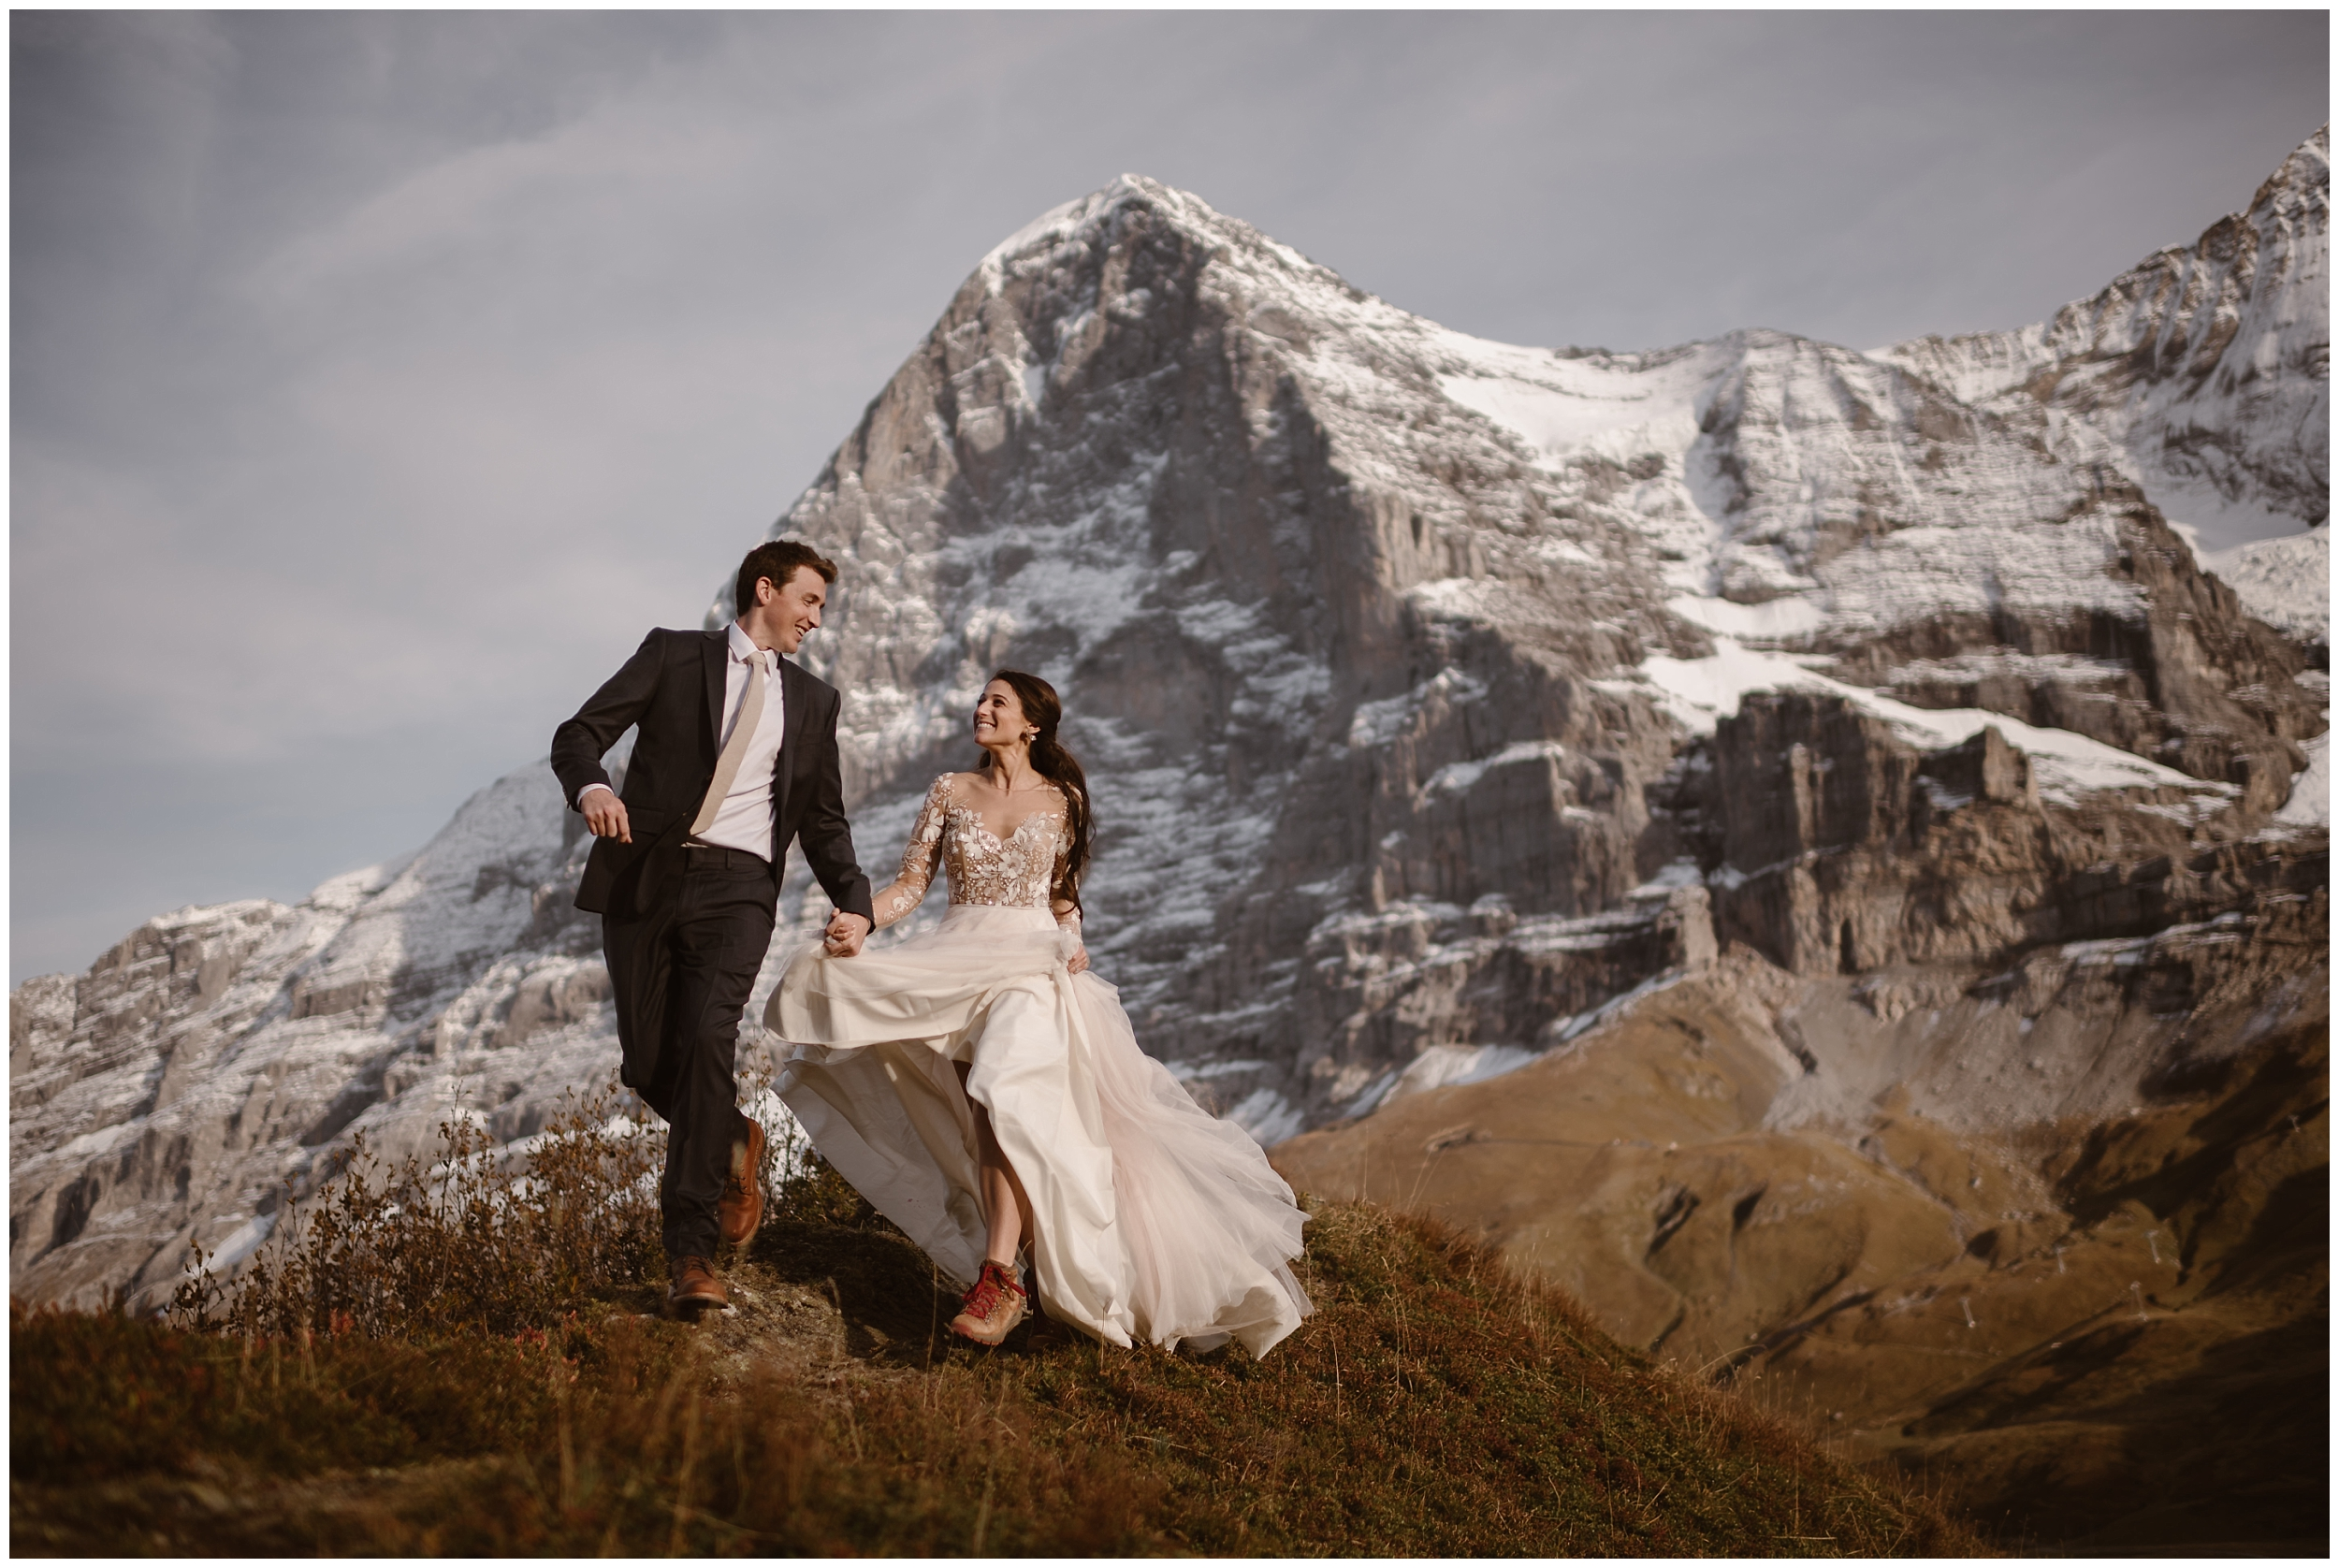 A bride and groom take hands in their wedding attire and run through an alpine mountain. Behind them, a giant, Switzerland peak reaches toward the sky. The couple included this elopement location as one of the best elopement ideas for their elopement wedding. These adventure elopement pictures were captured by elopement photographer Adventure Instead.